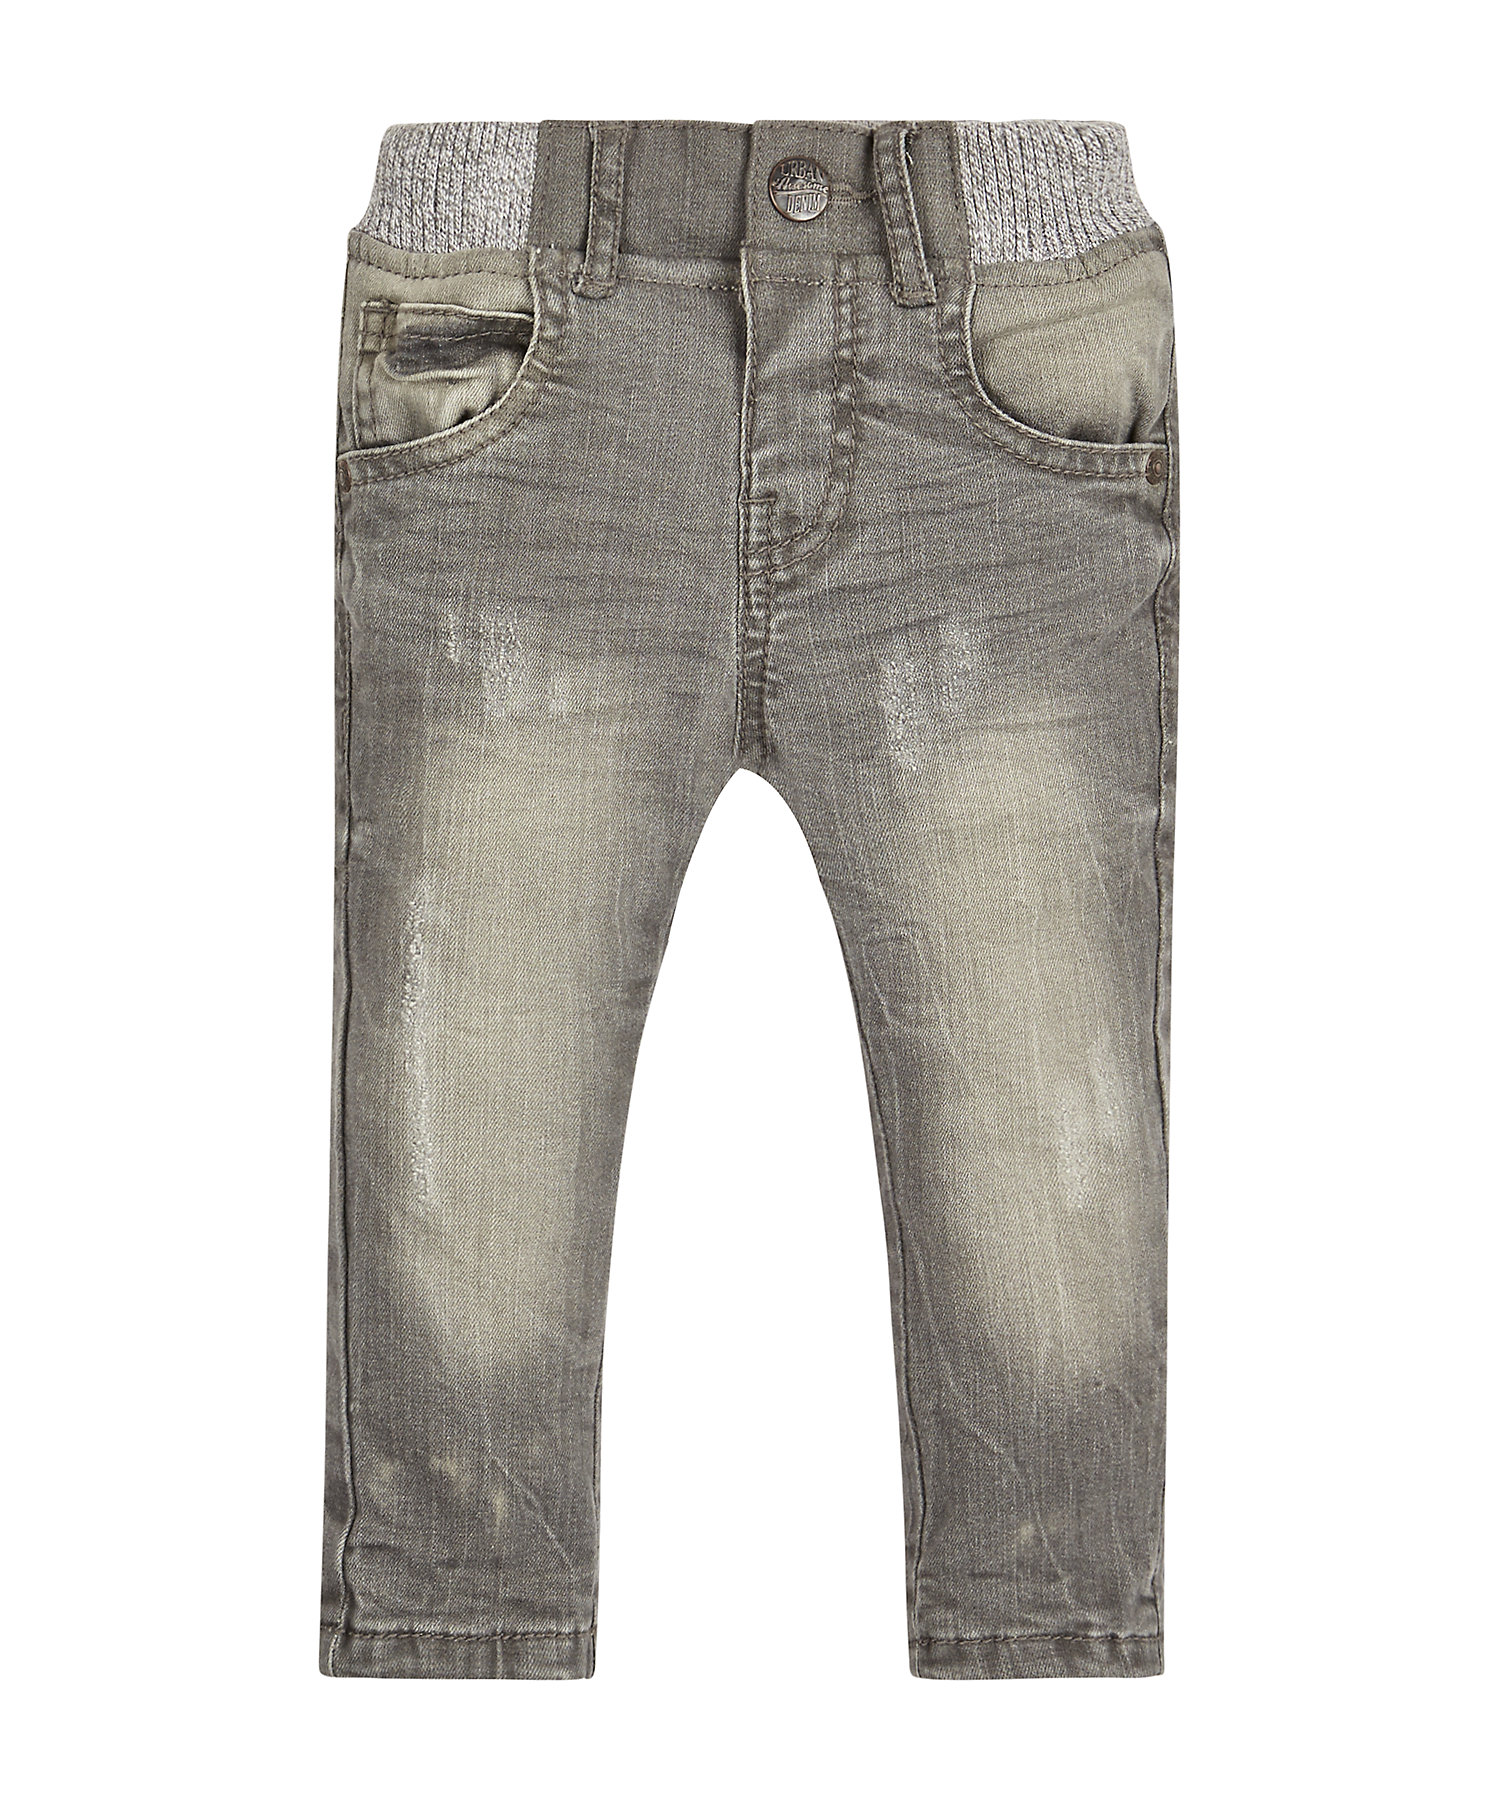 Mothercare | Boys Jeans Skinny Fit - Grey